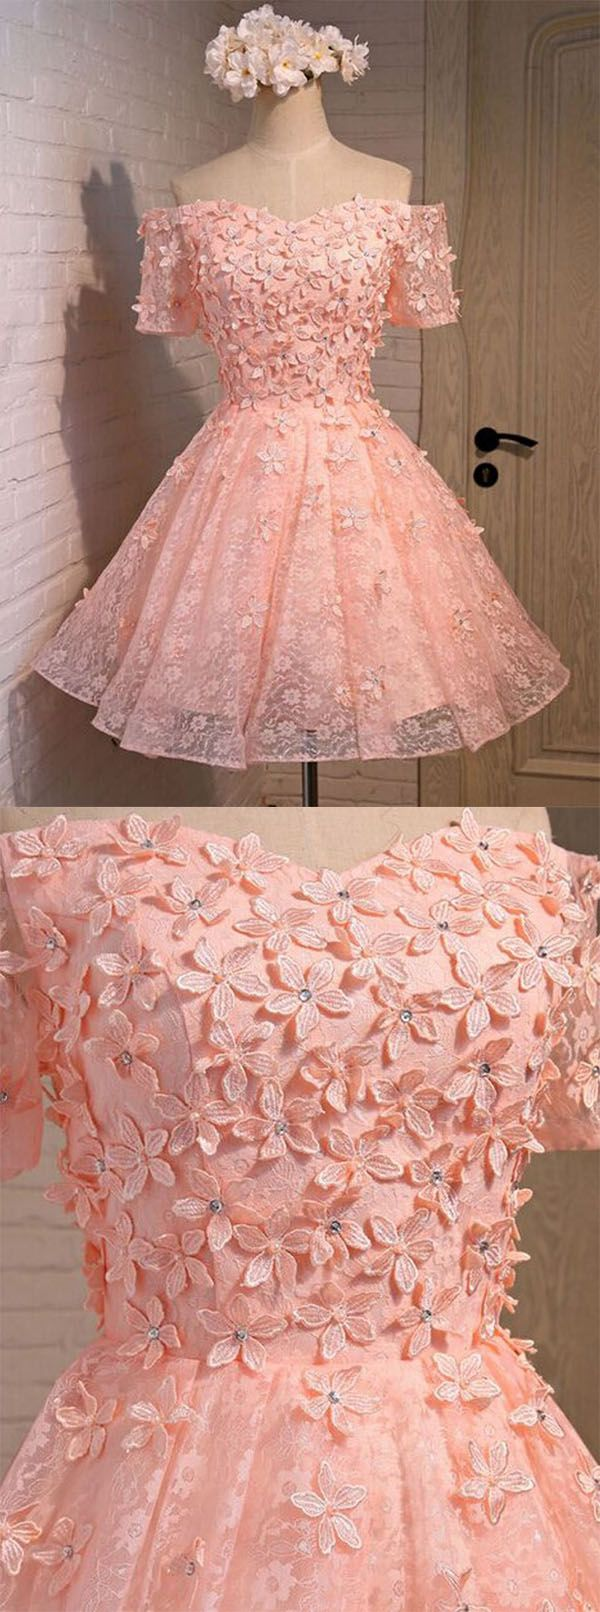 2016 homecoming dress, lace homecoming dress, coral homecoming dress, short homecoming dress, mini homecoming dress, homecoming dress with appliques, homecoming dress with crystal, discount homecoming dress, homecoming dress, cheap homecoming dress, #2016 #homecoming #coral #short